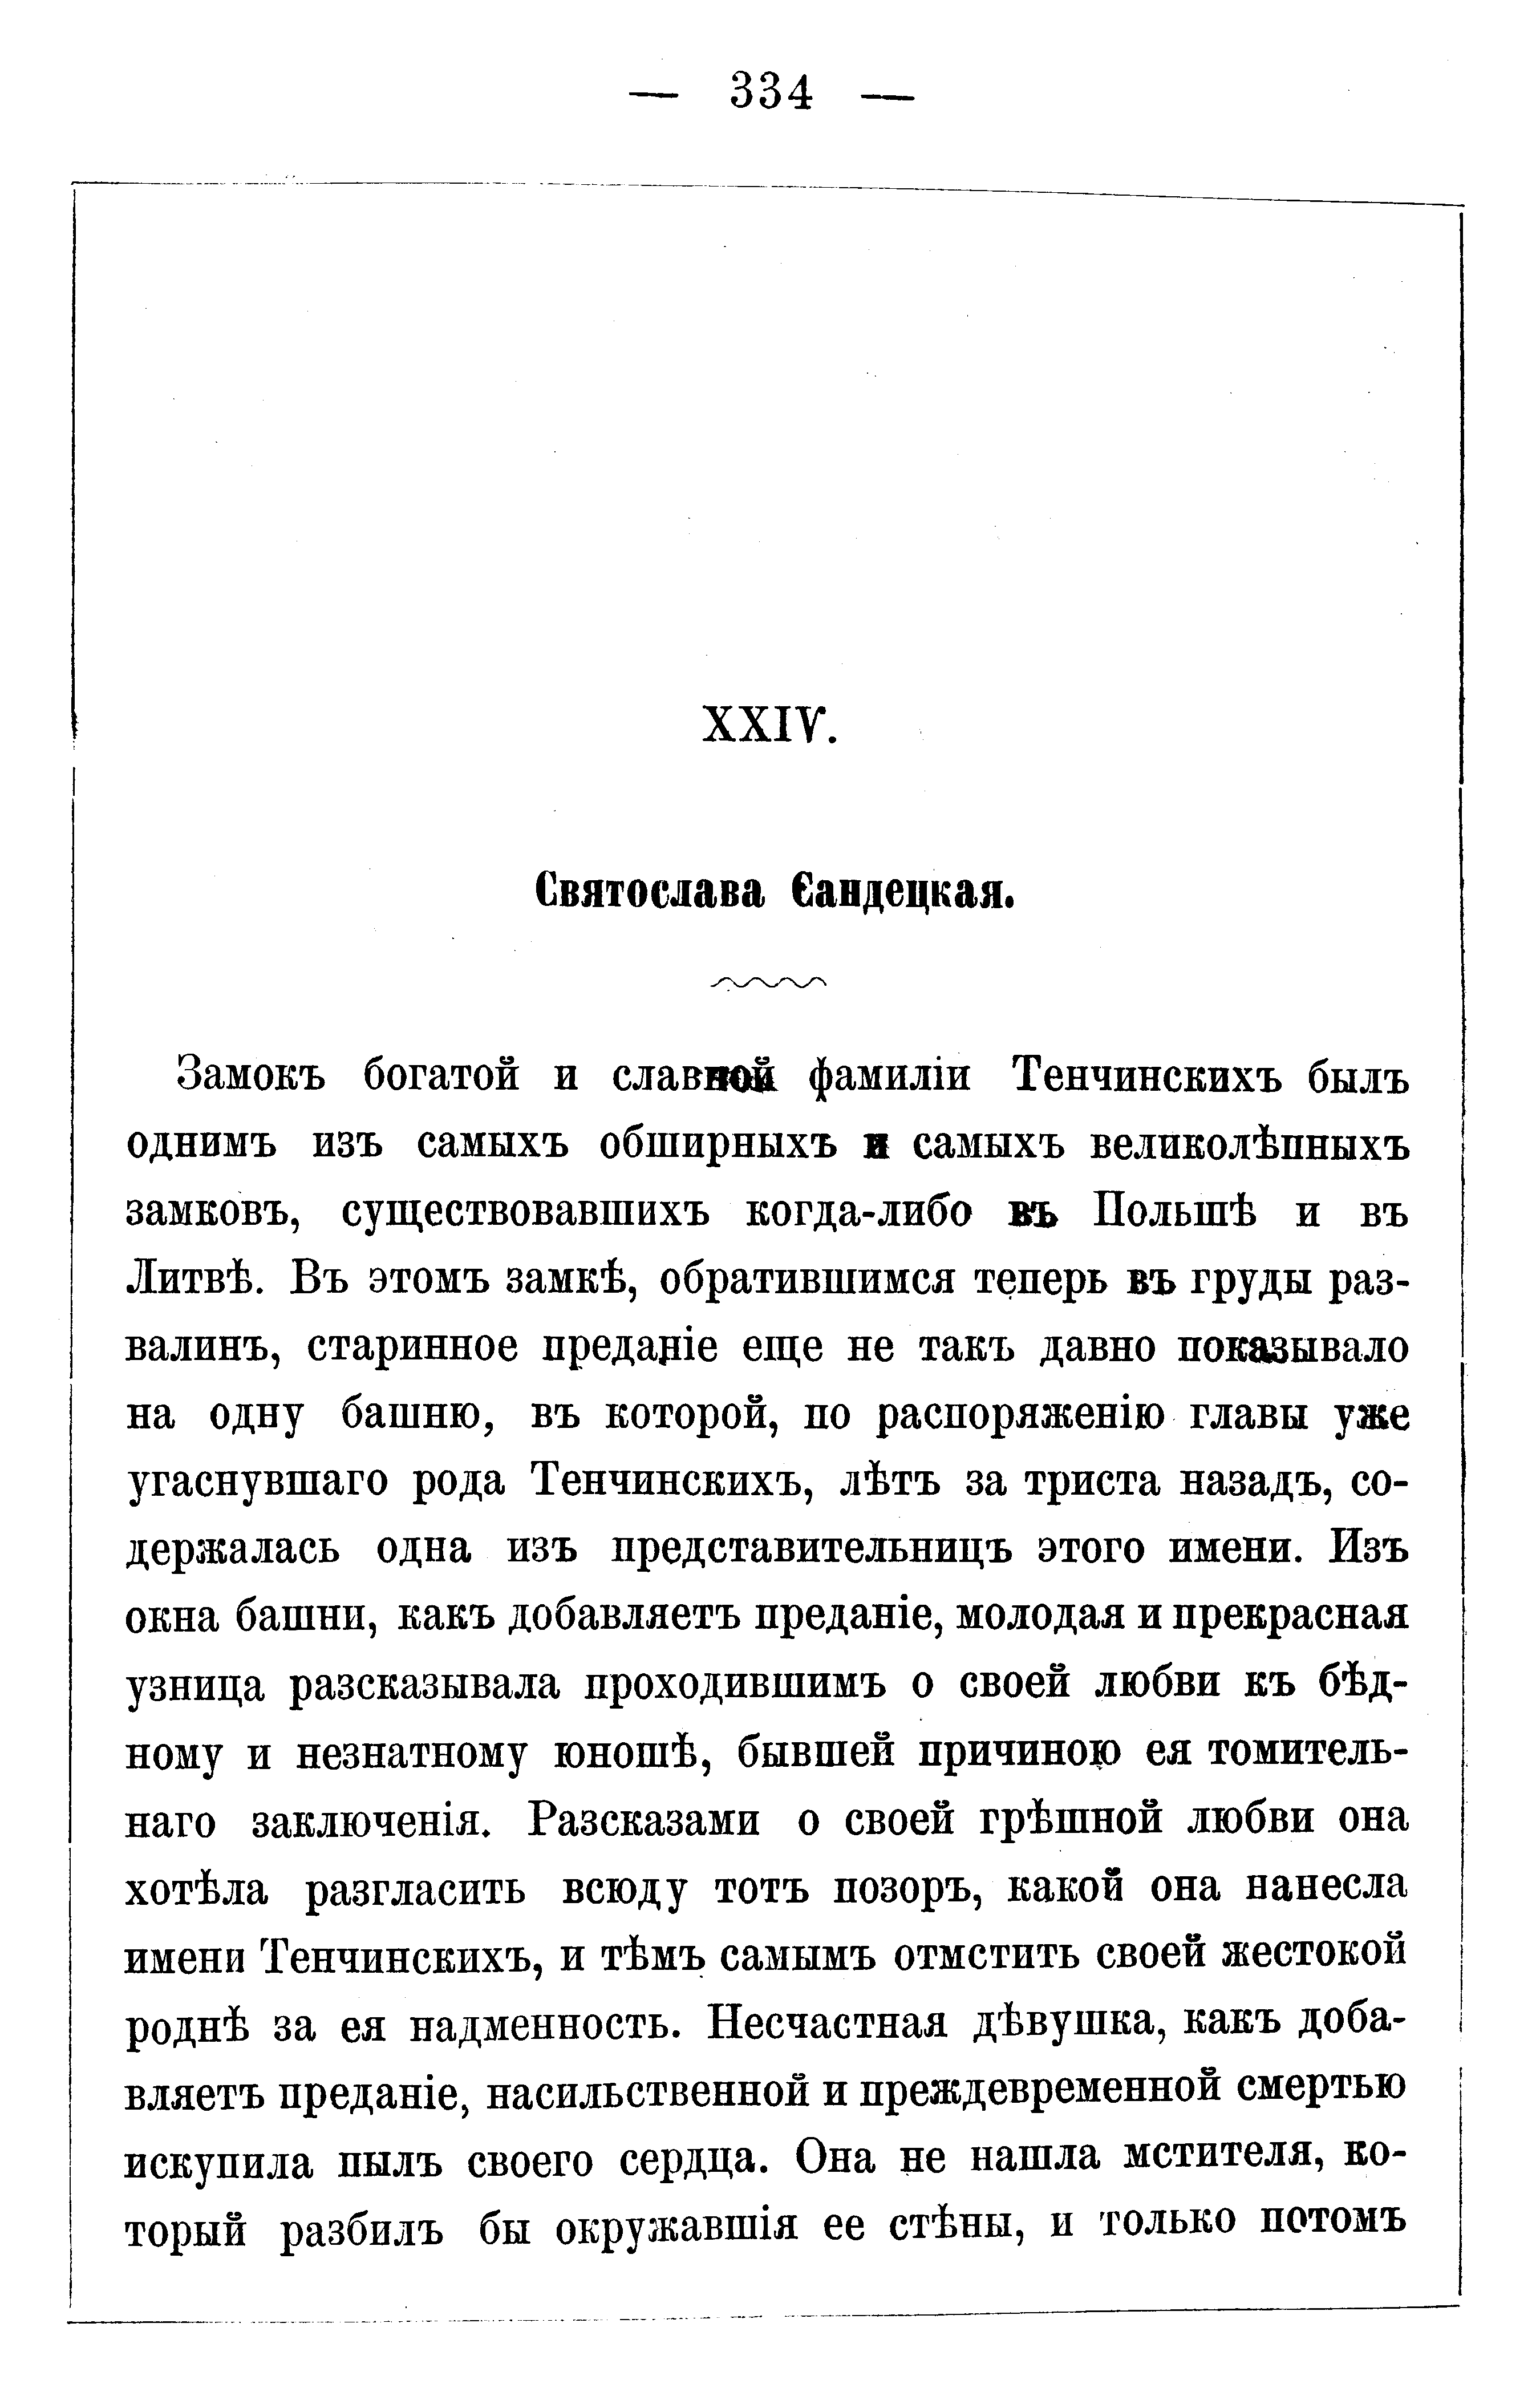 https://upload.wikimedia.org/wikipedia/commons/1/1b/Evgeny_Petrovich_Karnovich_-_Essays_and_Short_Stories_from_Old_Way_of_Life_of_Poland-334.png